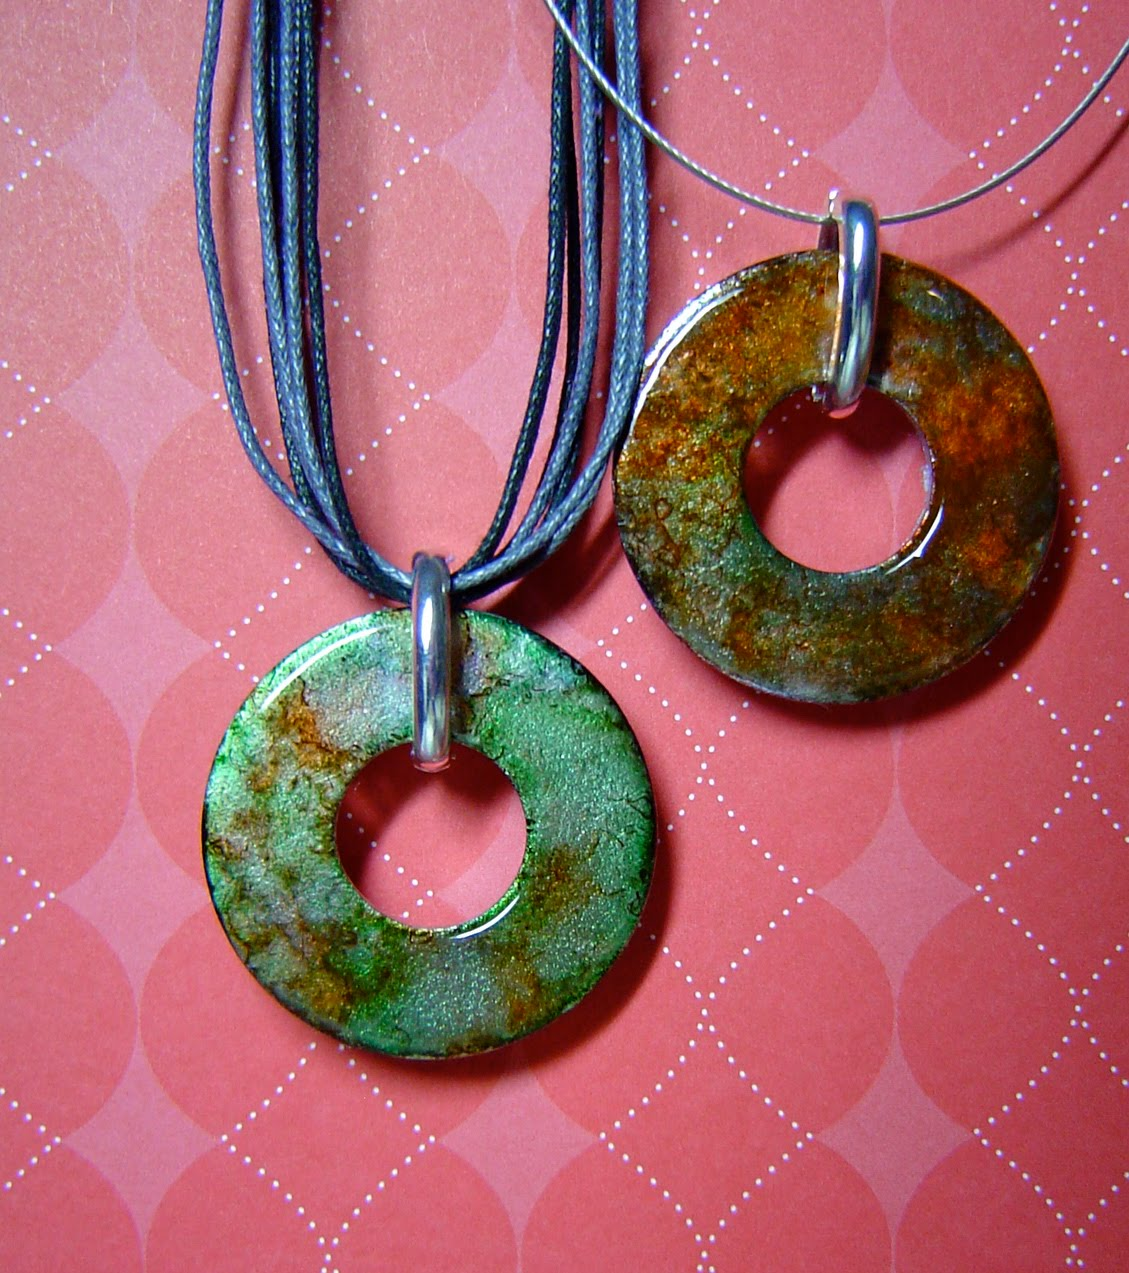 Accentuate n ink more washer pendant jewelrywas supposed to friday november 13 2009 aloadofball Choice Image